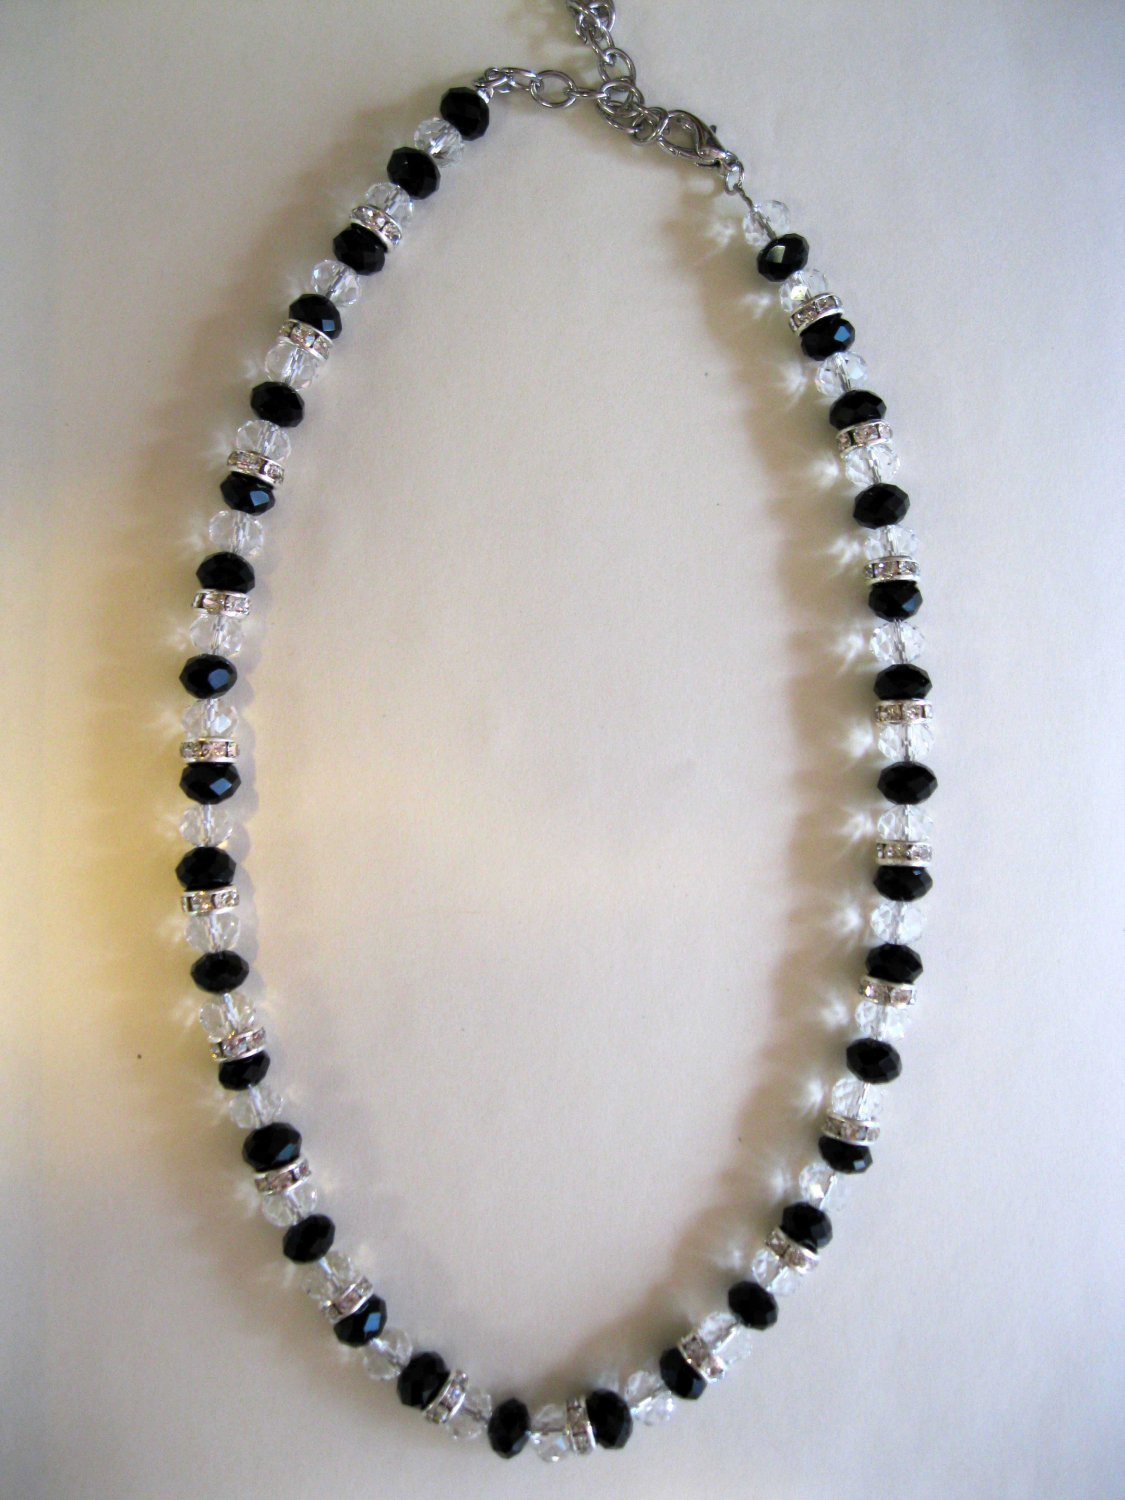 Black faceted glass with crystal accents fashion necklace - 1207N